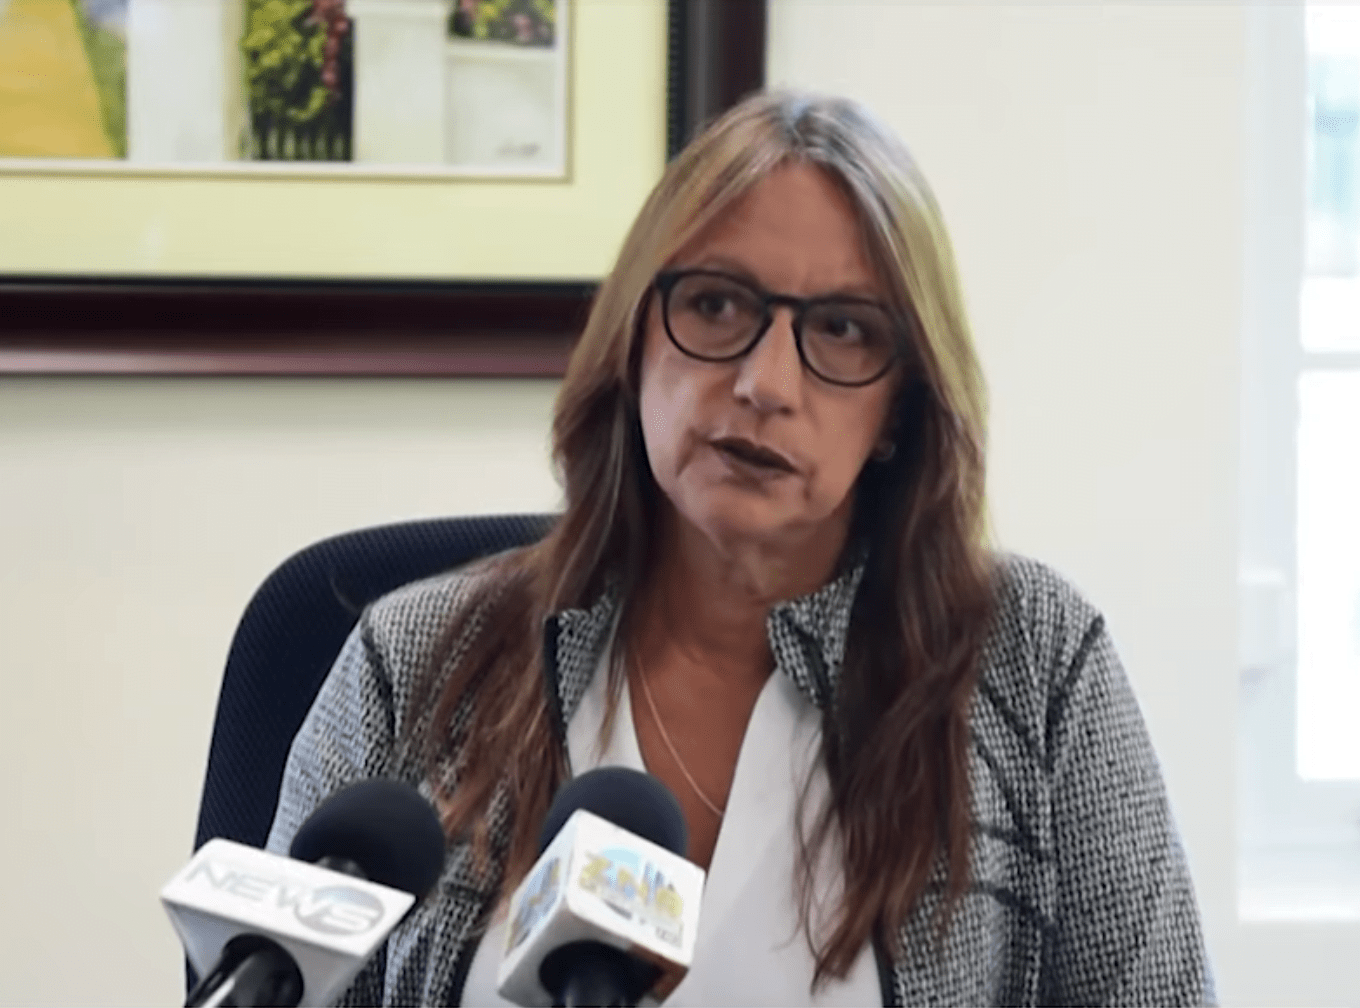 IDB pumps millions into public & private projects